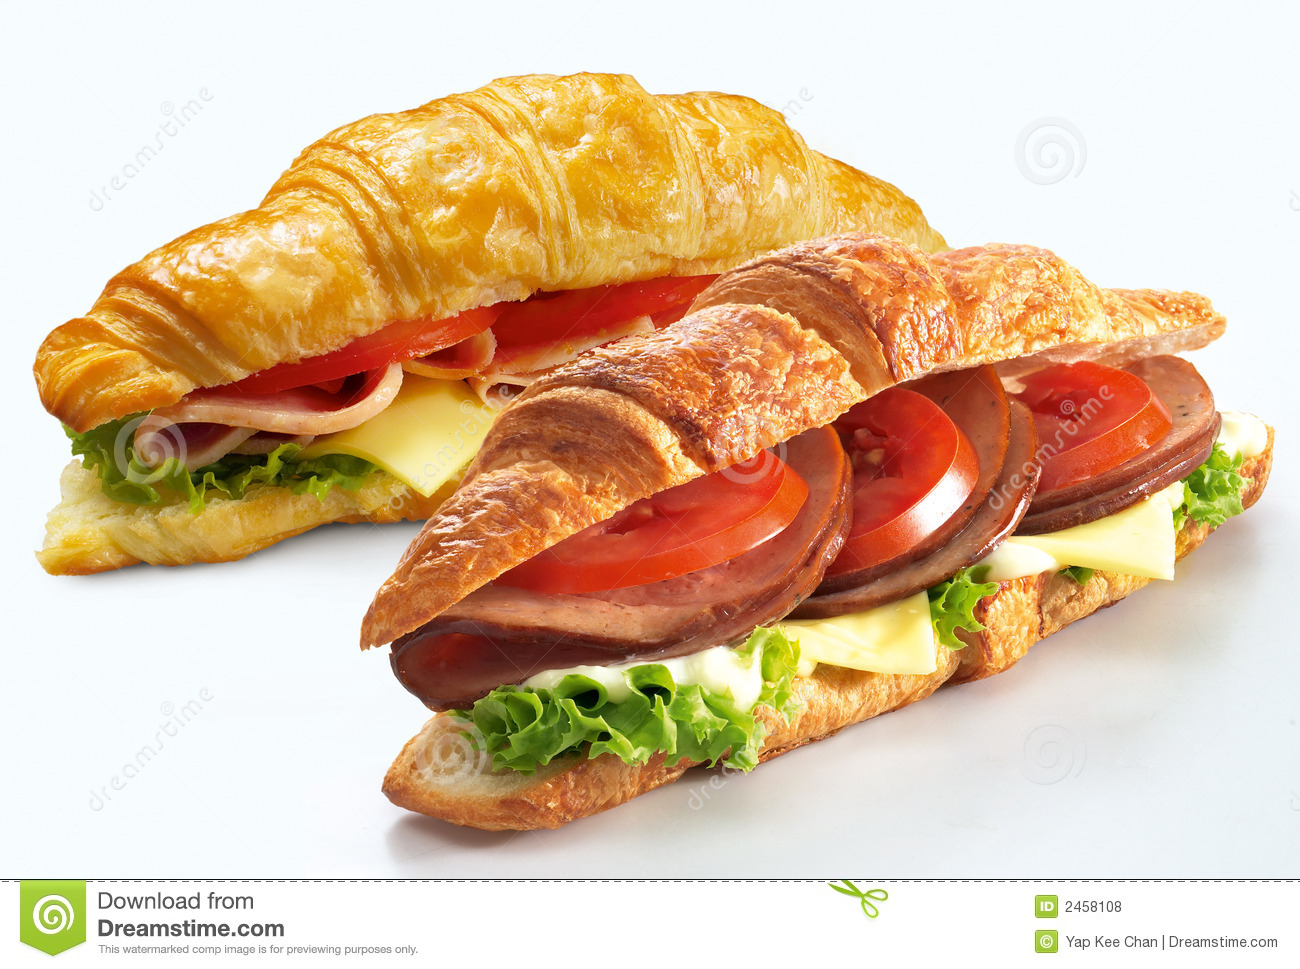 Fast Food Royalty Free Stock Photos - Image: 2458108: www.dreamstime.com/royalty-free-stock-photos-fast-food-image2458108